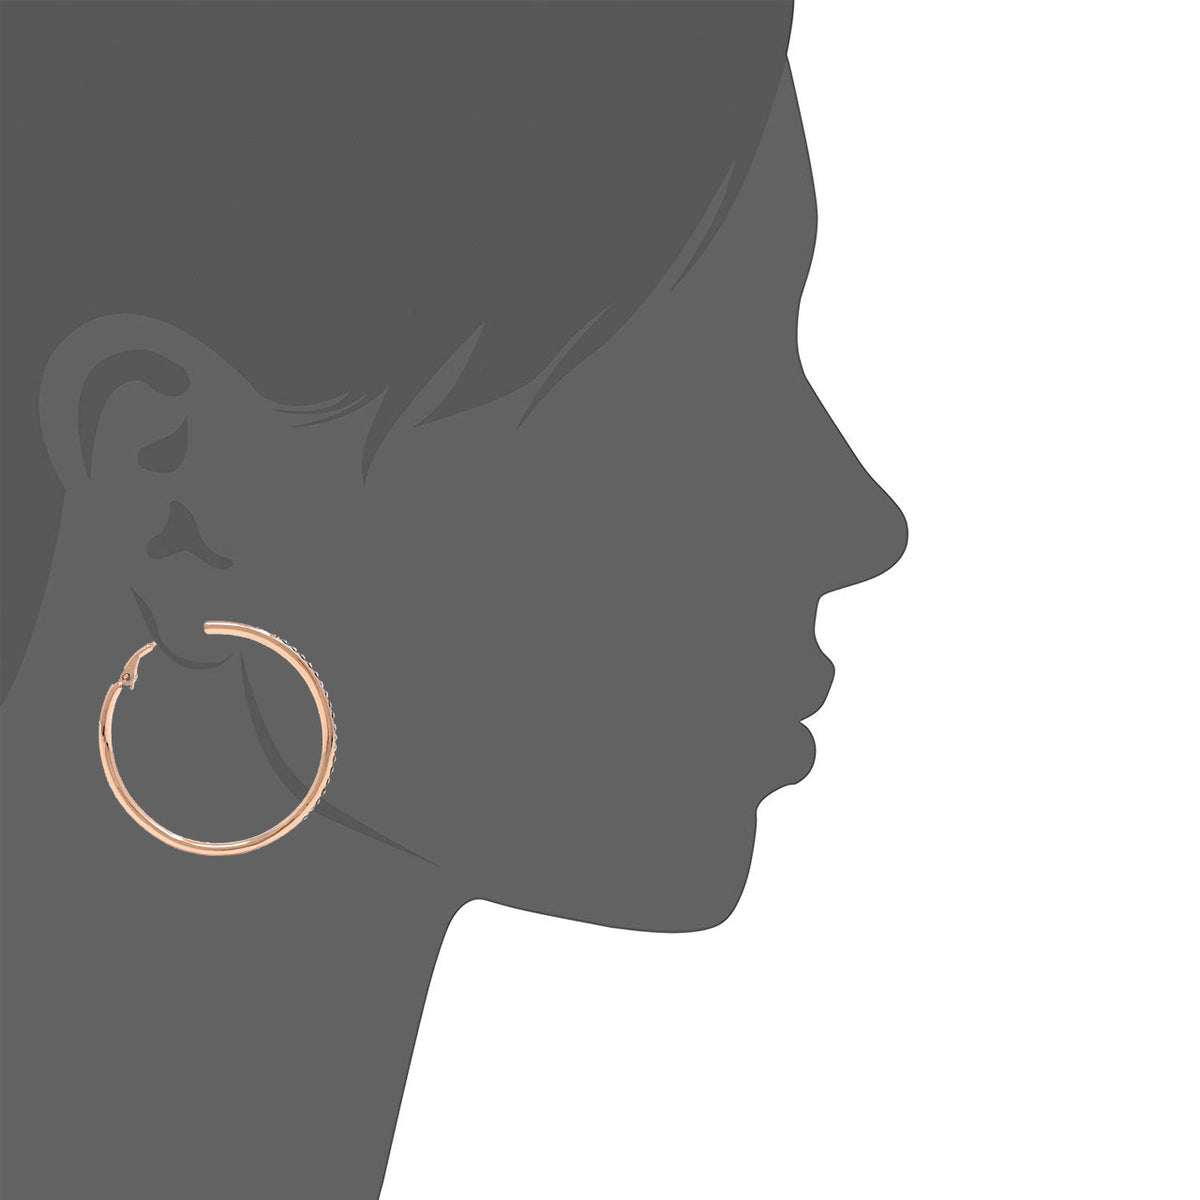 Amelia Large Pave Hoop Earrings with White Clear Round Crystals from Swarovski Rose Gold Plated - Ed Heart